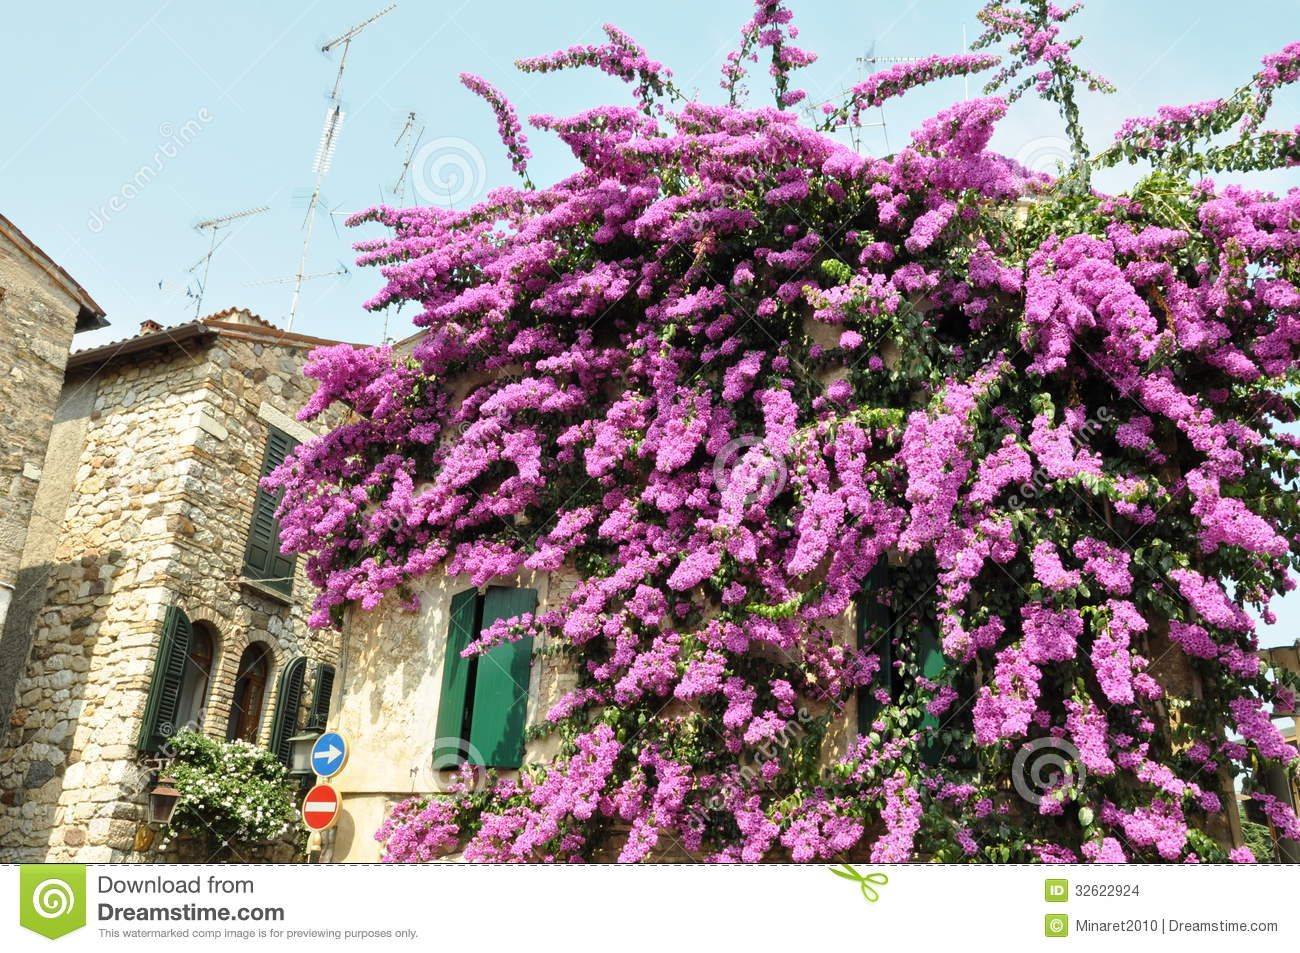 bougainvillea-flower-wall-hause-sirmione-lake-garda-32622924 Play Tree House Plans on tree houses in california, one tree treehouse plans, tree design, tree forts, tree houses for rent, tipi plans, tree houses for boys, swing set plans, yurt plans, playhouse plans, tree houses for dummies, deck plans, diy treehouse plans, tree houses for adults, tree houses for teenagers, tree mansion, tree stand plans, log home plans, tree houses for girls,